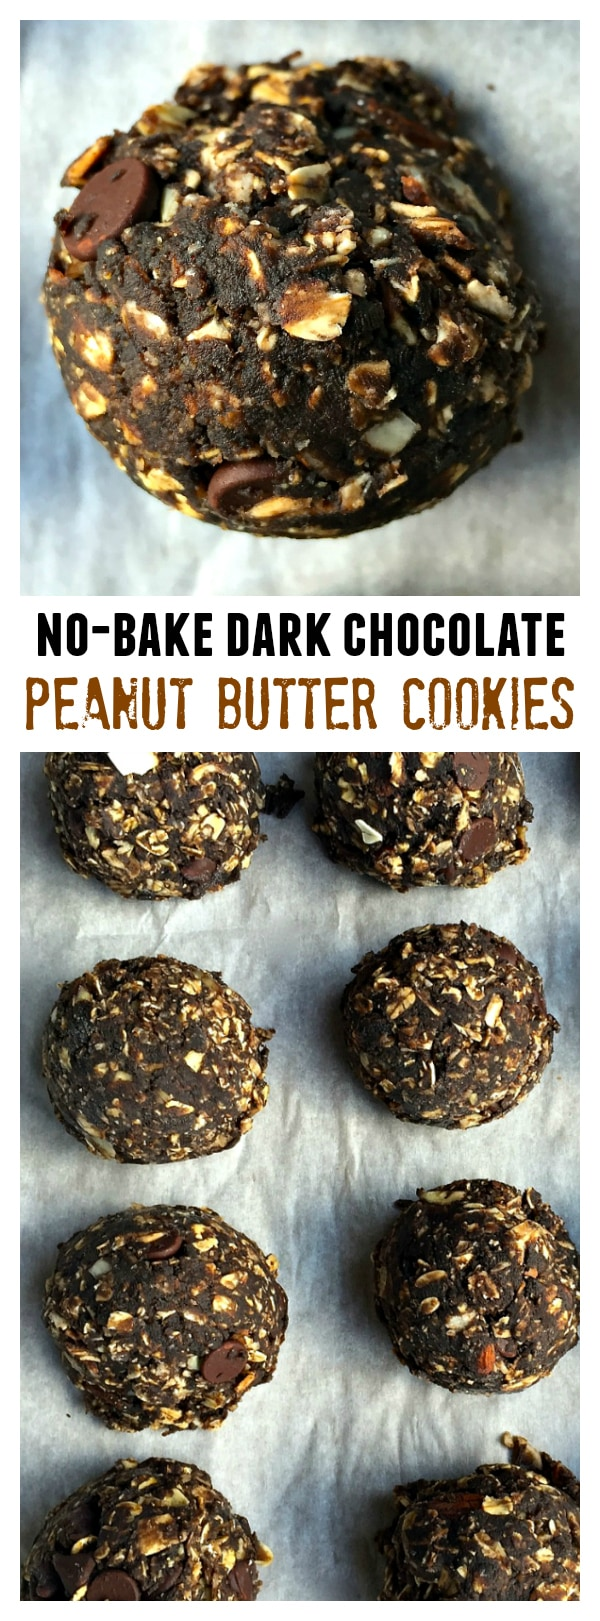 No-Bake Dark Chocolate Peanut Butter Cookies